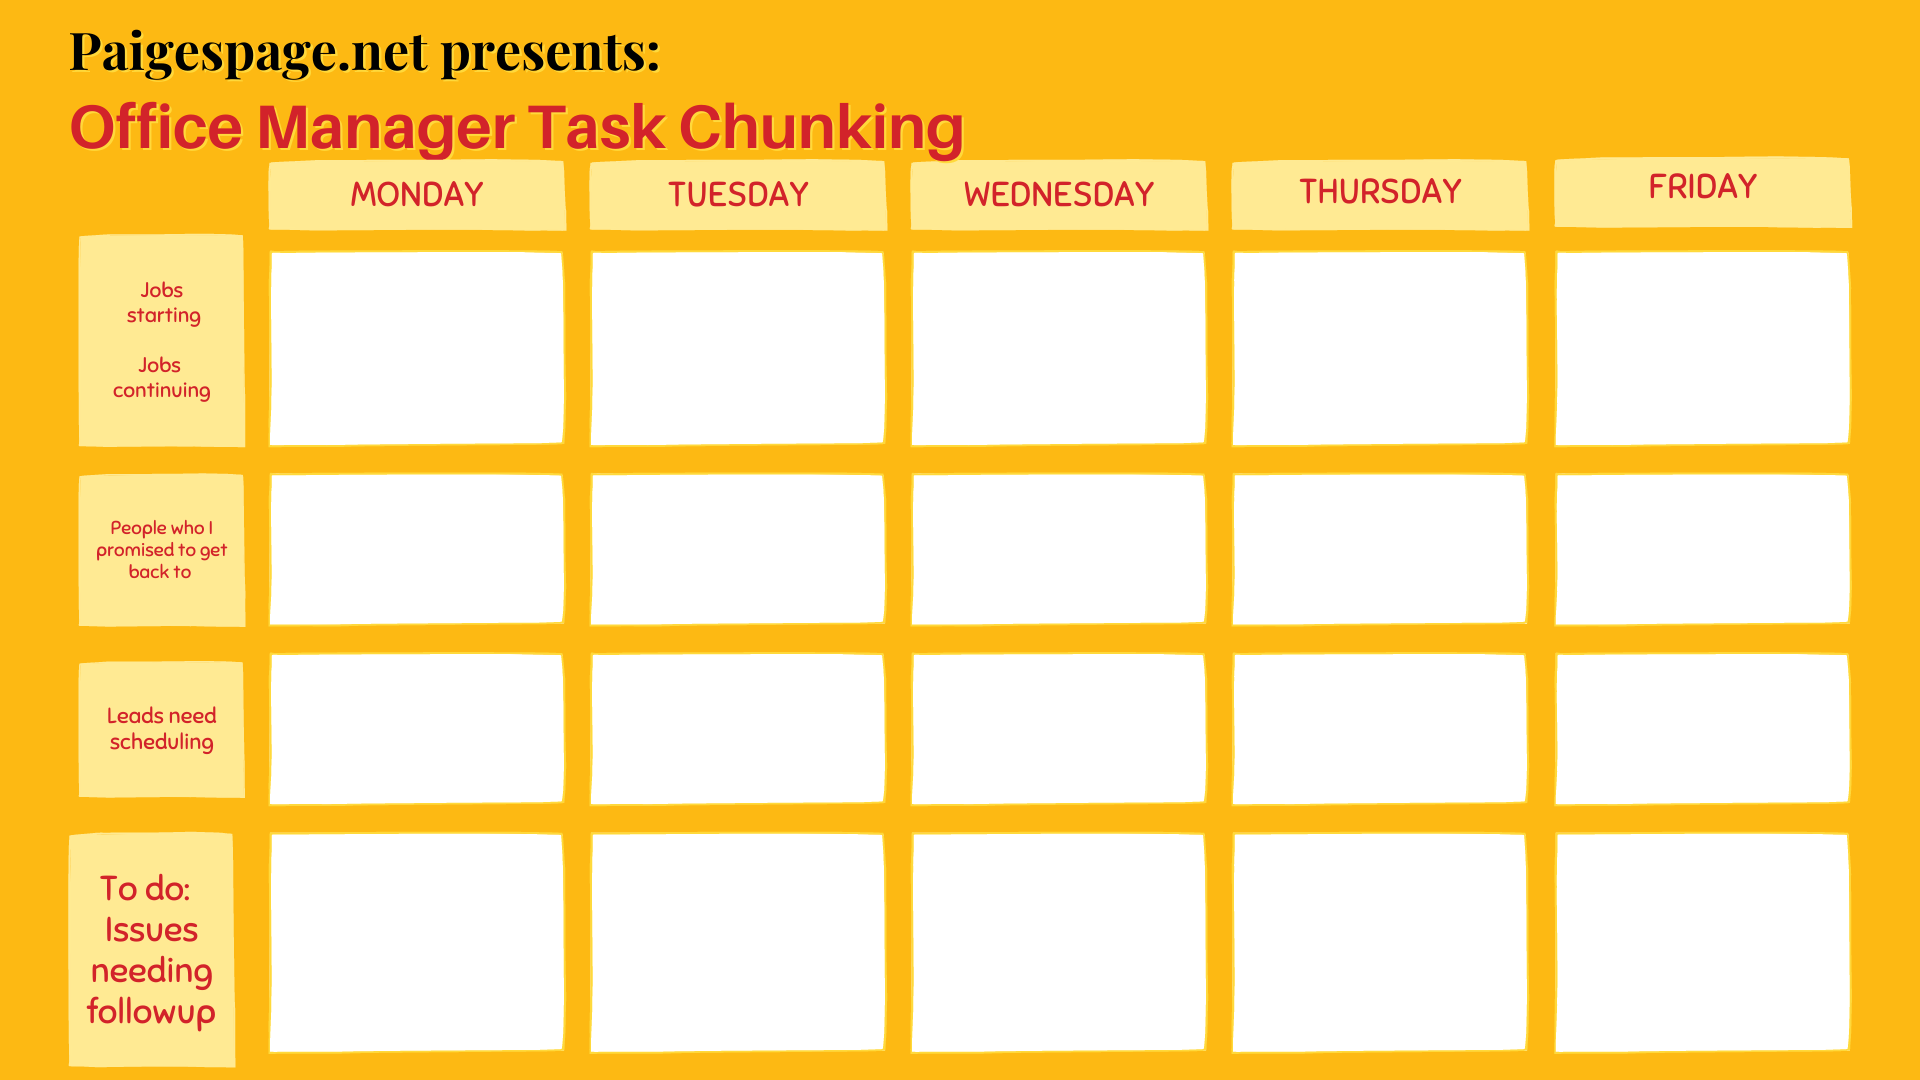 Office Manager weekly task calendar Monday-Friday